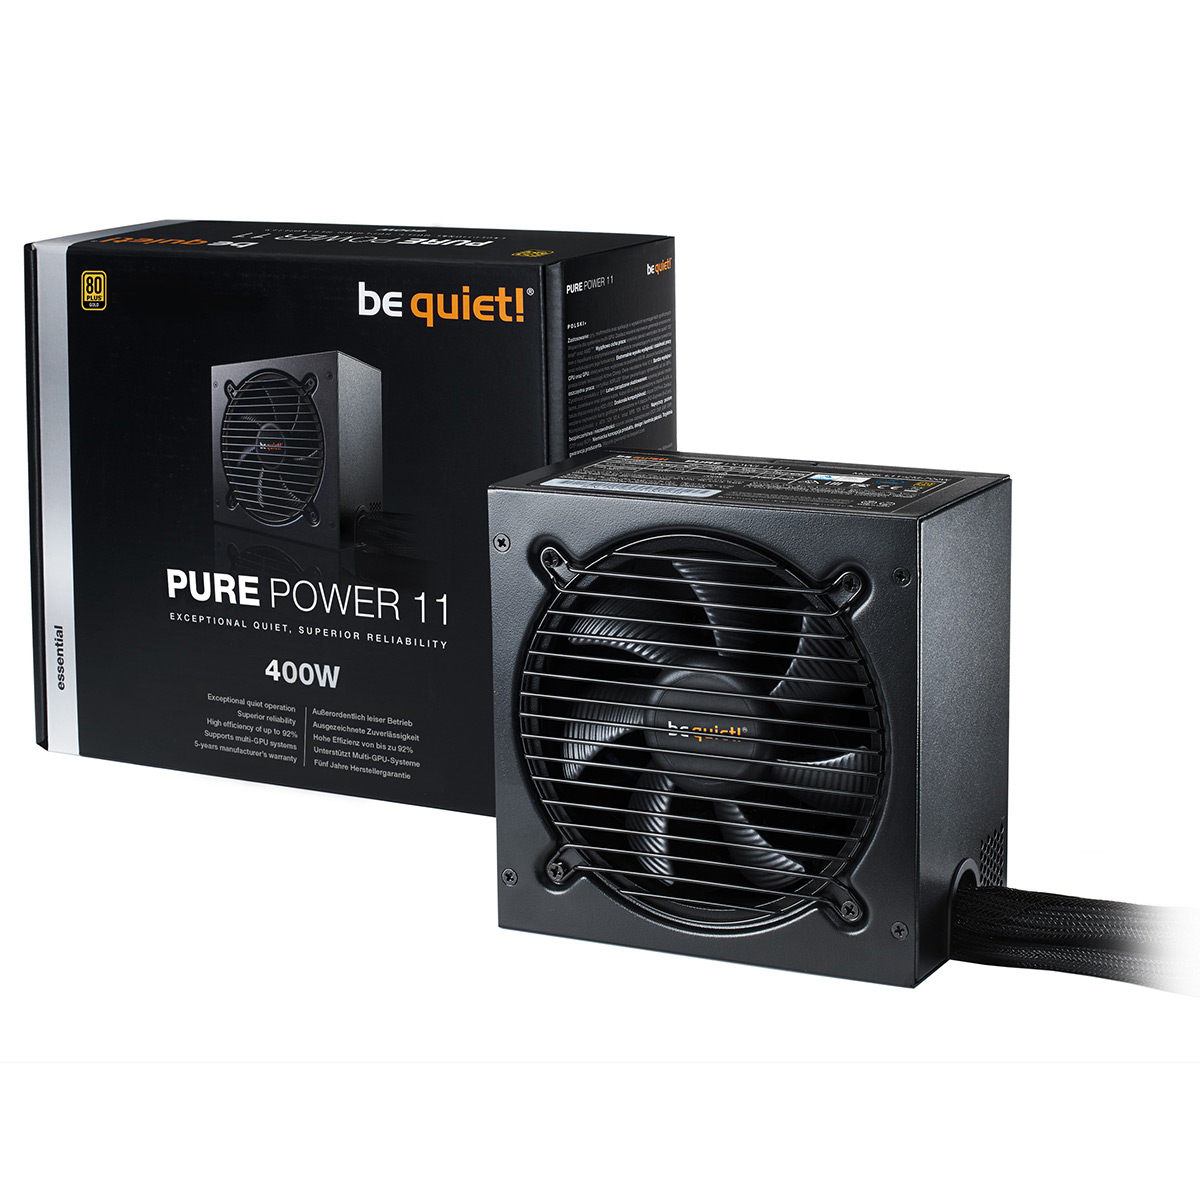 Alimentation PC be quiet! Pure Power 11 400W 80PLUS Gold Alimentation 400W ATX 12V 2.4 (Garantie 5 ans constructeur) - 80PLUS Gold